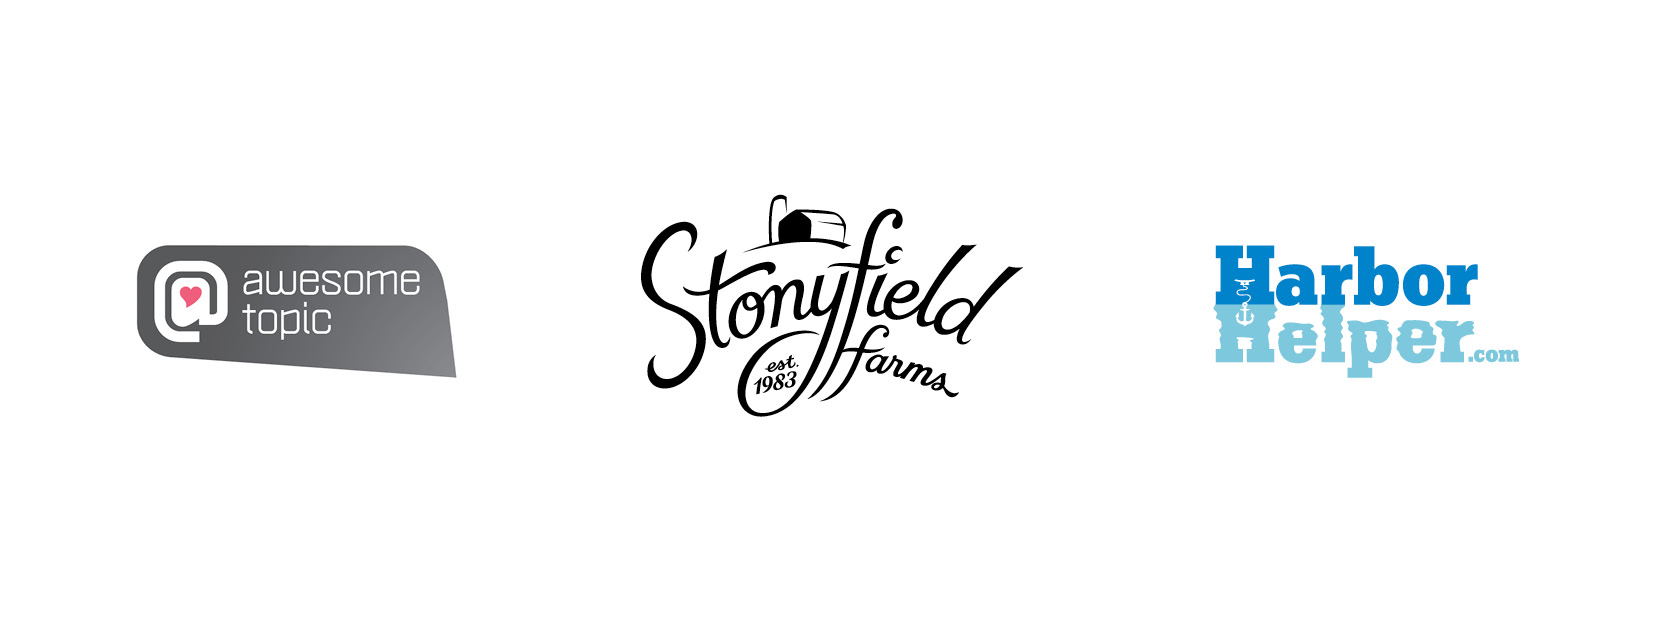 Awesome Topic development, Stonyfield Farms concept, HarborHelper.com concept